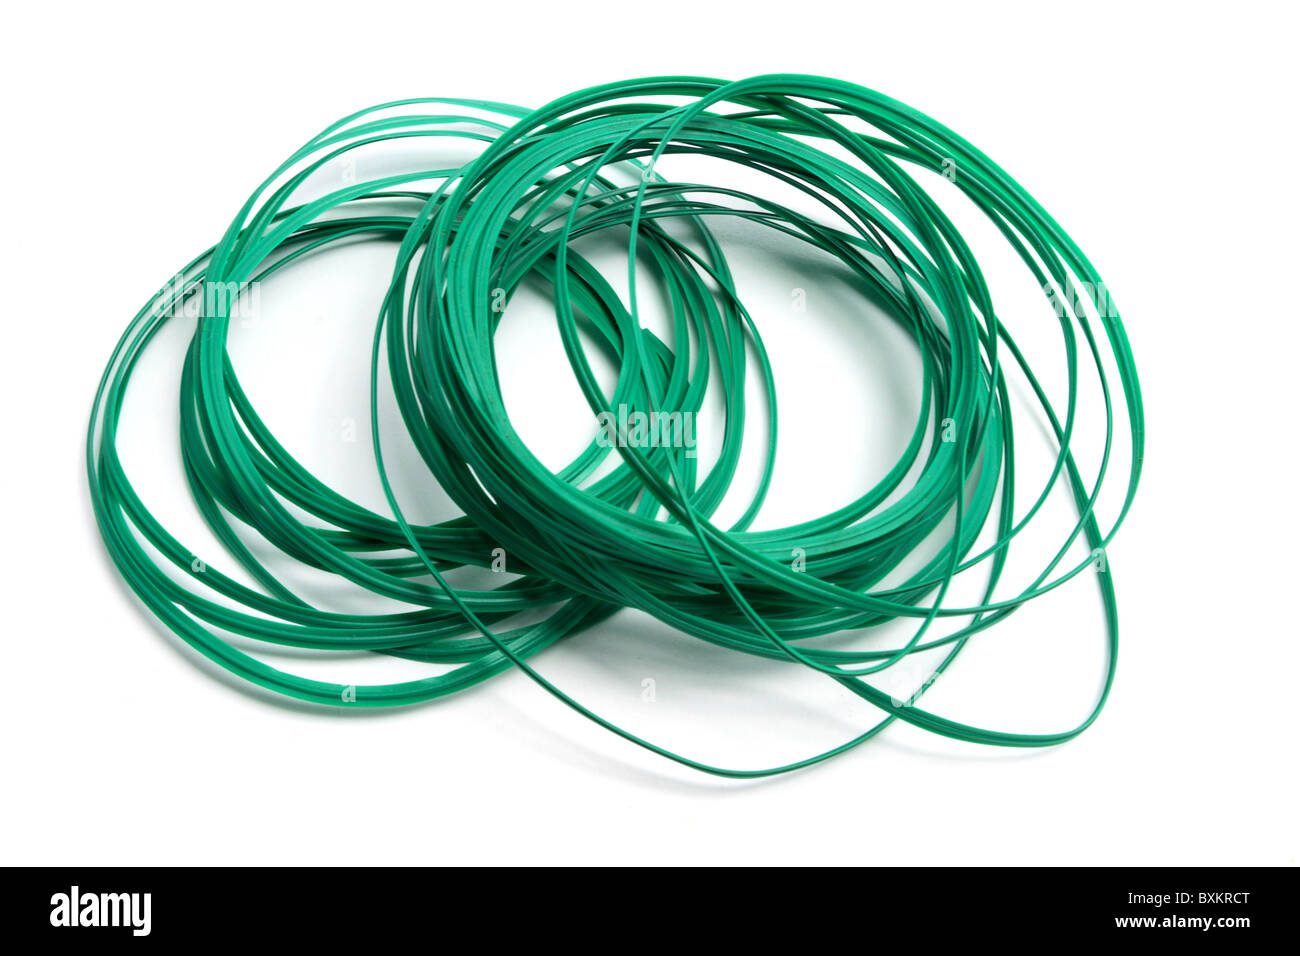 Wires Cut Out Stock Images & Pictures - Alamy